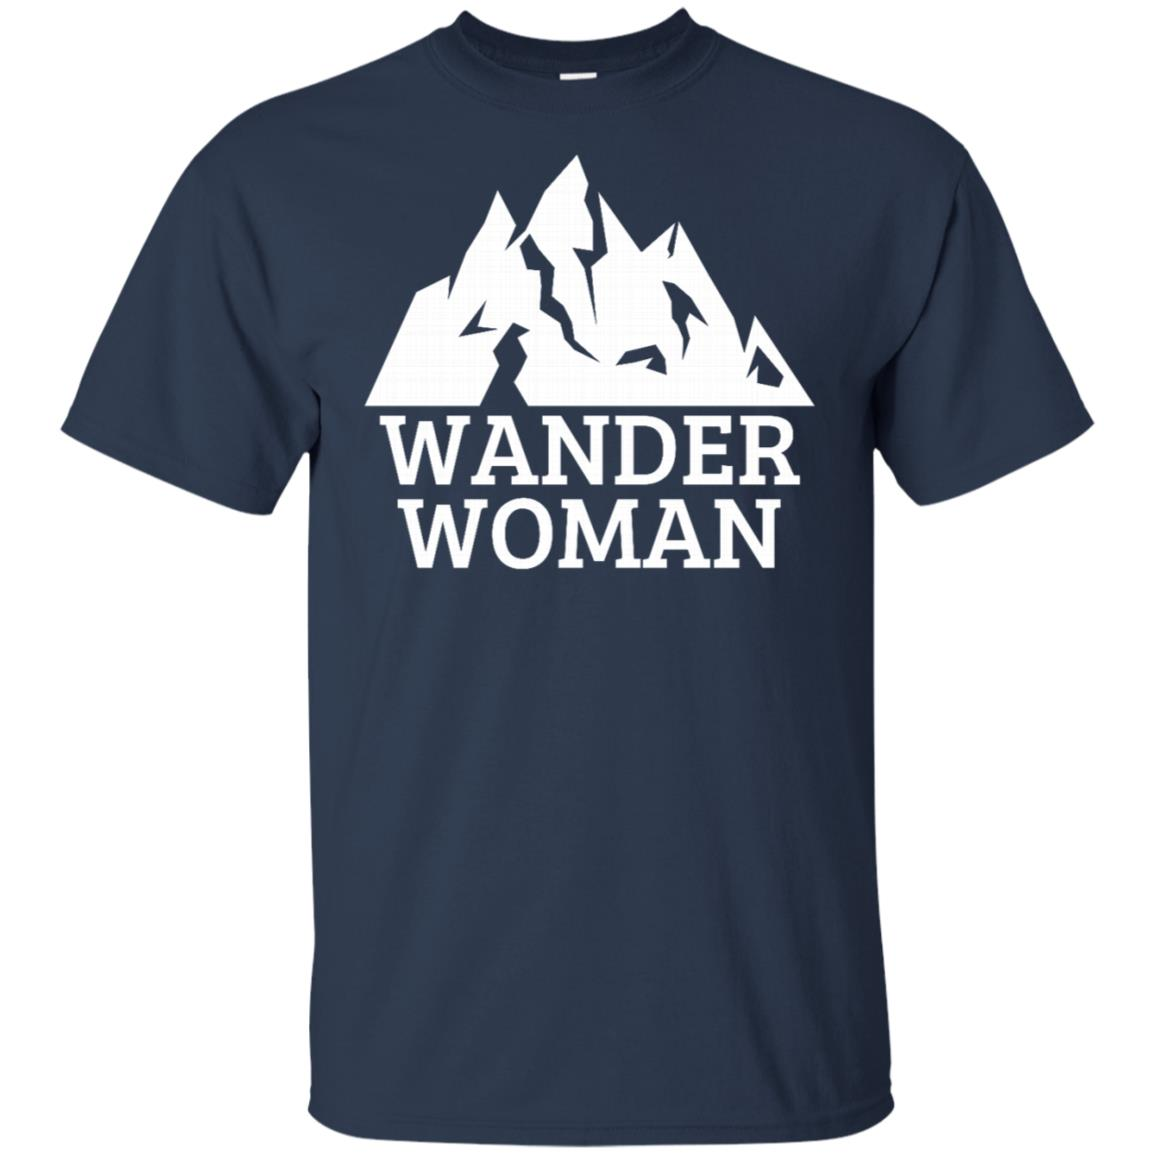 Wander Woman for Women Who Like To Travel Unisex Short Sleeve